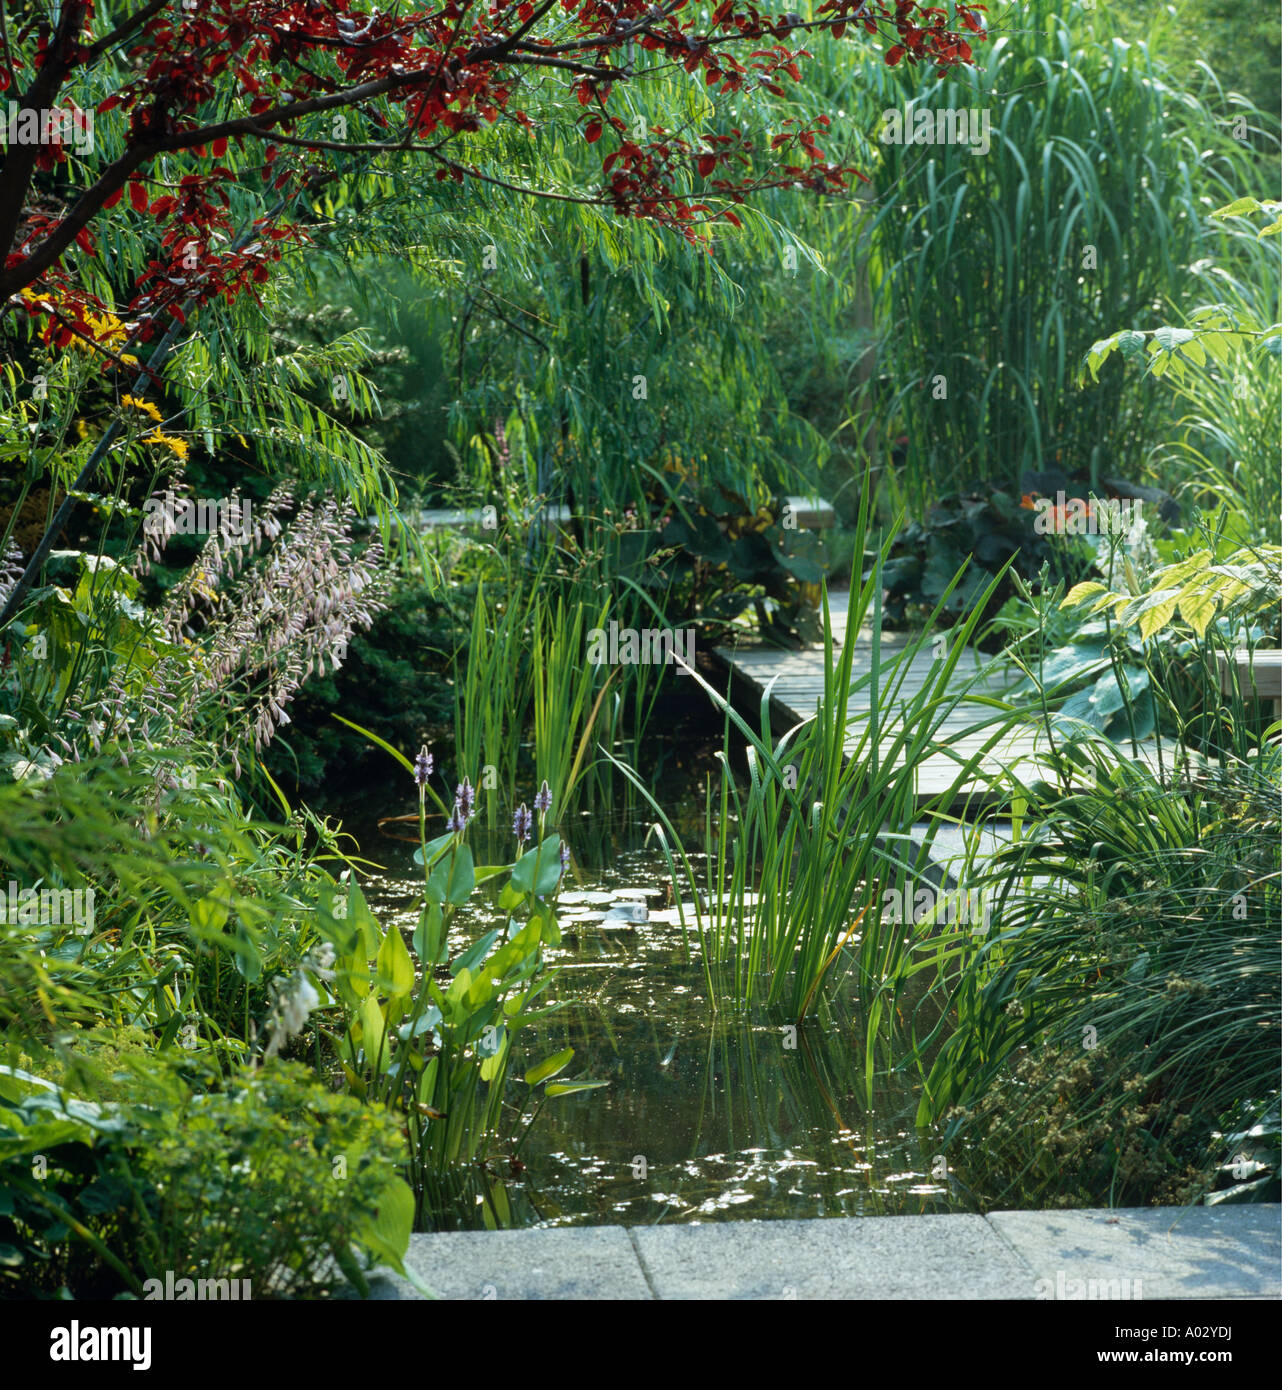 Lush planting around formal square garden pond stock photo for Plants for around garden ponds